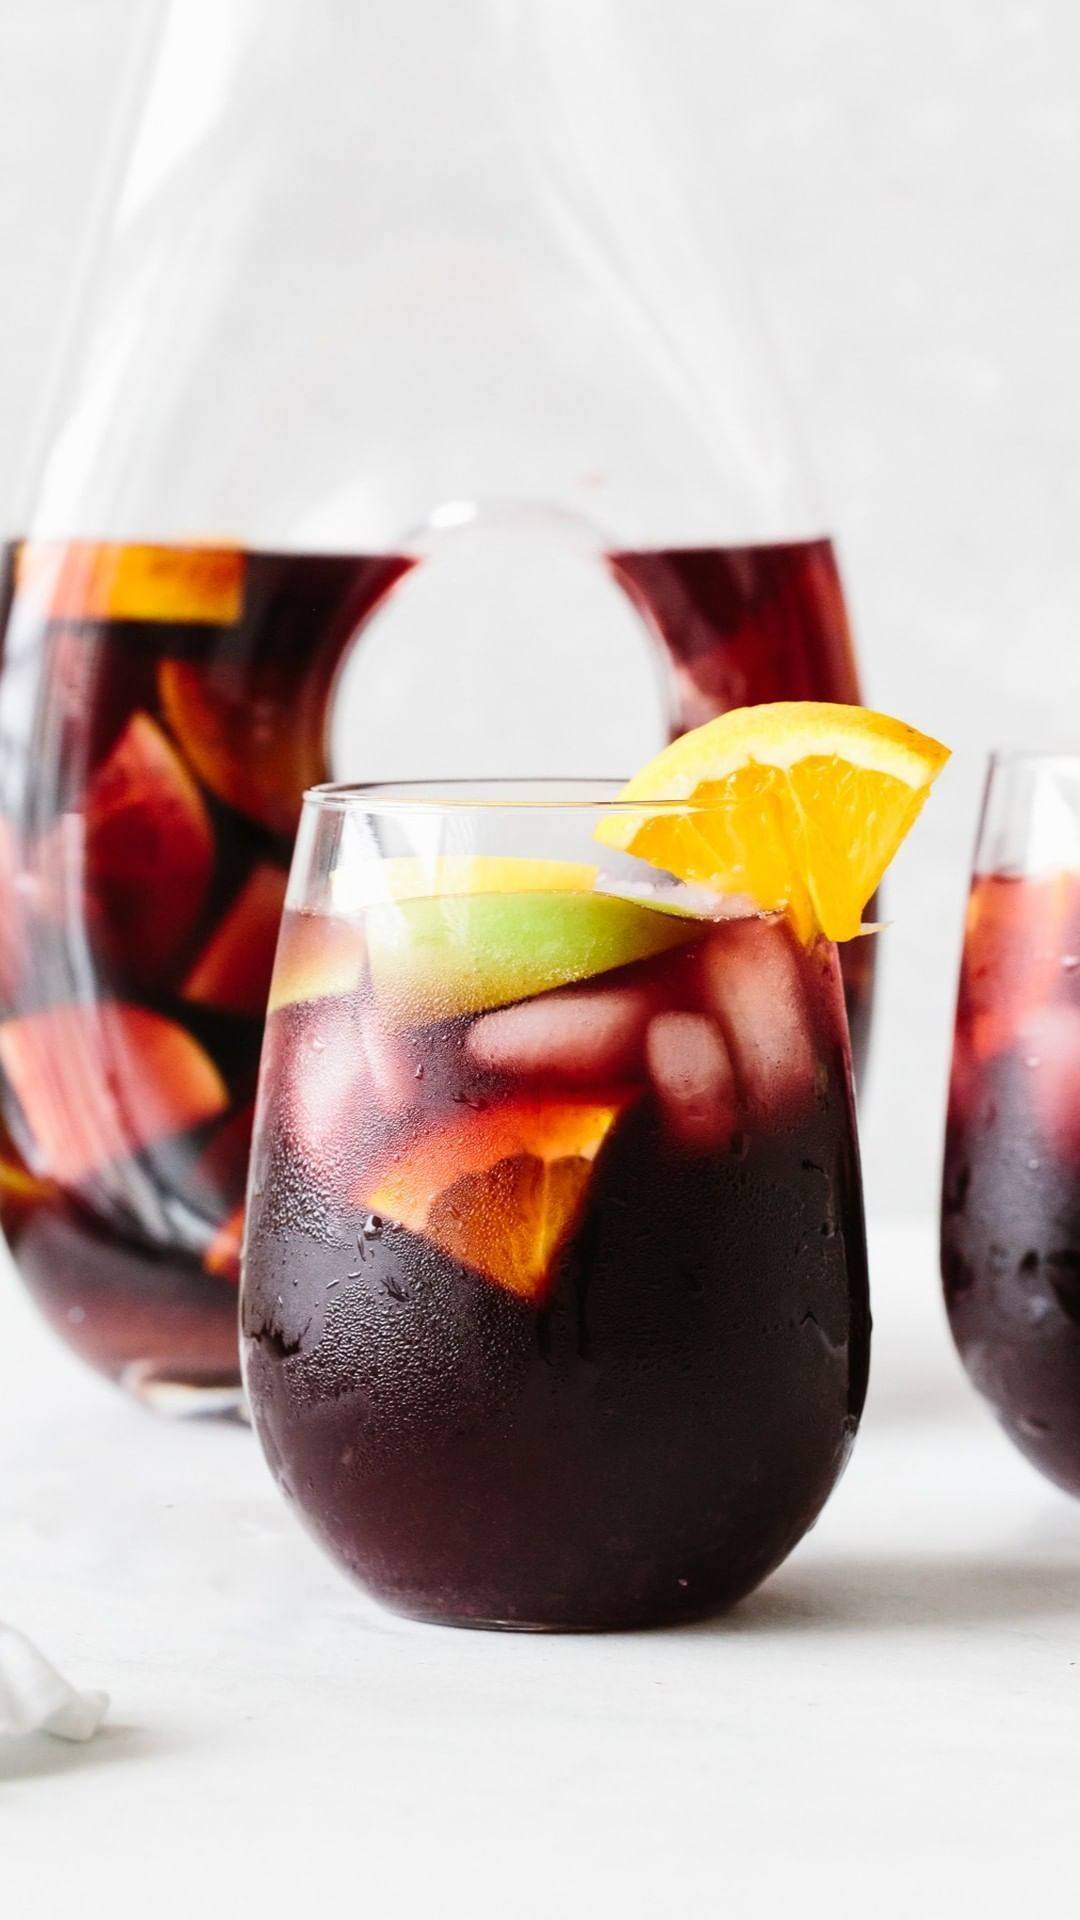 Lisa Bryan On Instagram It S Sangria Time Sangria Is A Sweet Cocktail Made From An Infusion Of Spanish R In 2020 Red Sangria Red Sangria Recipes Best Sangria Recipe